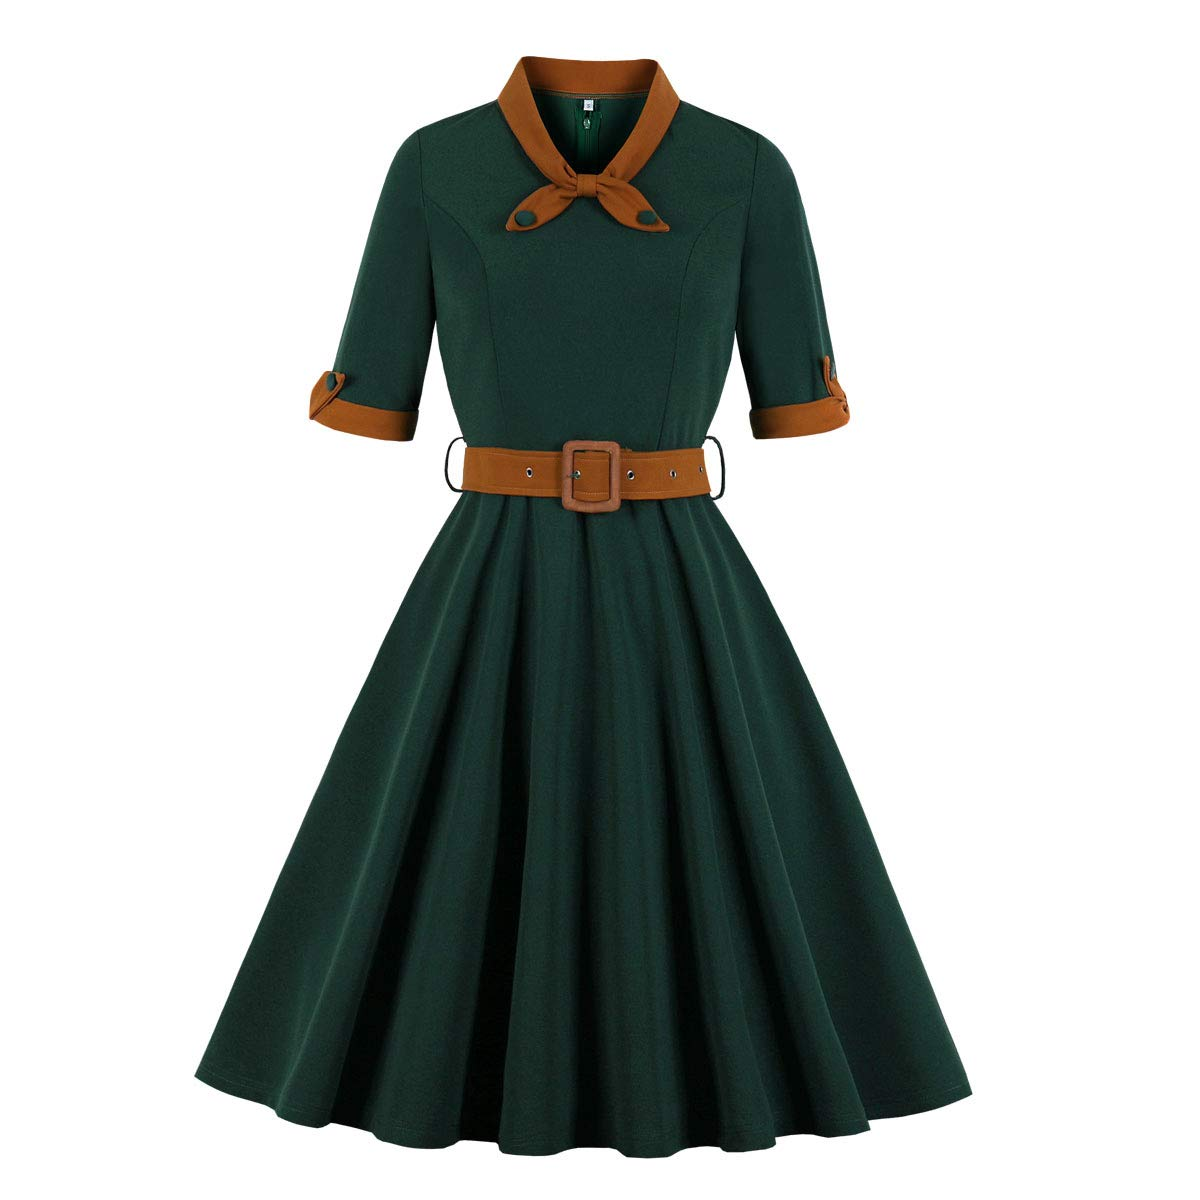 1940s Fashion Advice for Short Women Wellwits Womens 1/2 Half Sleeves Sailor Tie Neck 1940s Retro Vintage Dress $24.98 AT vintagedancer.com